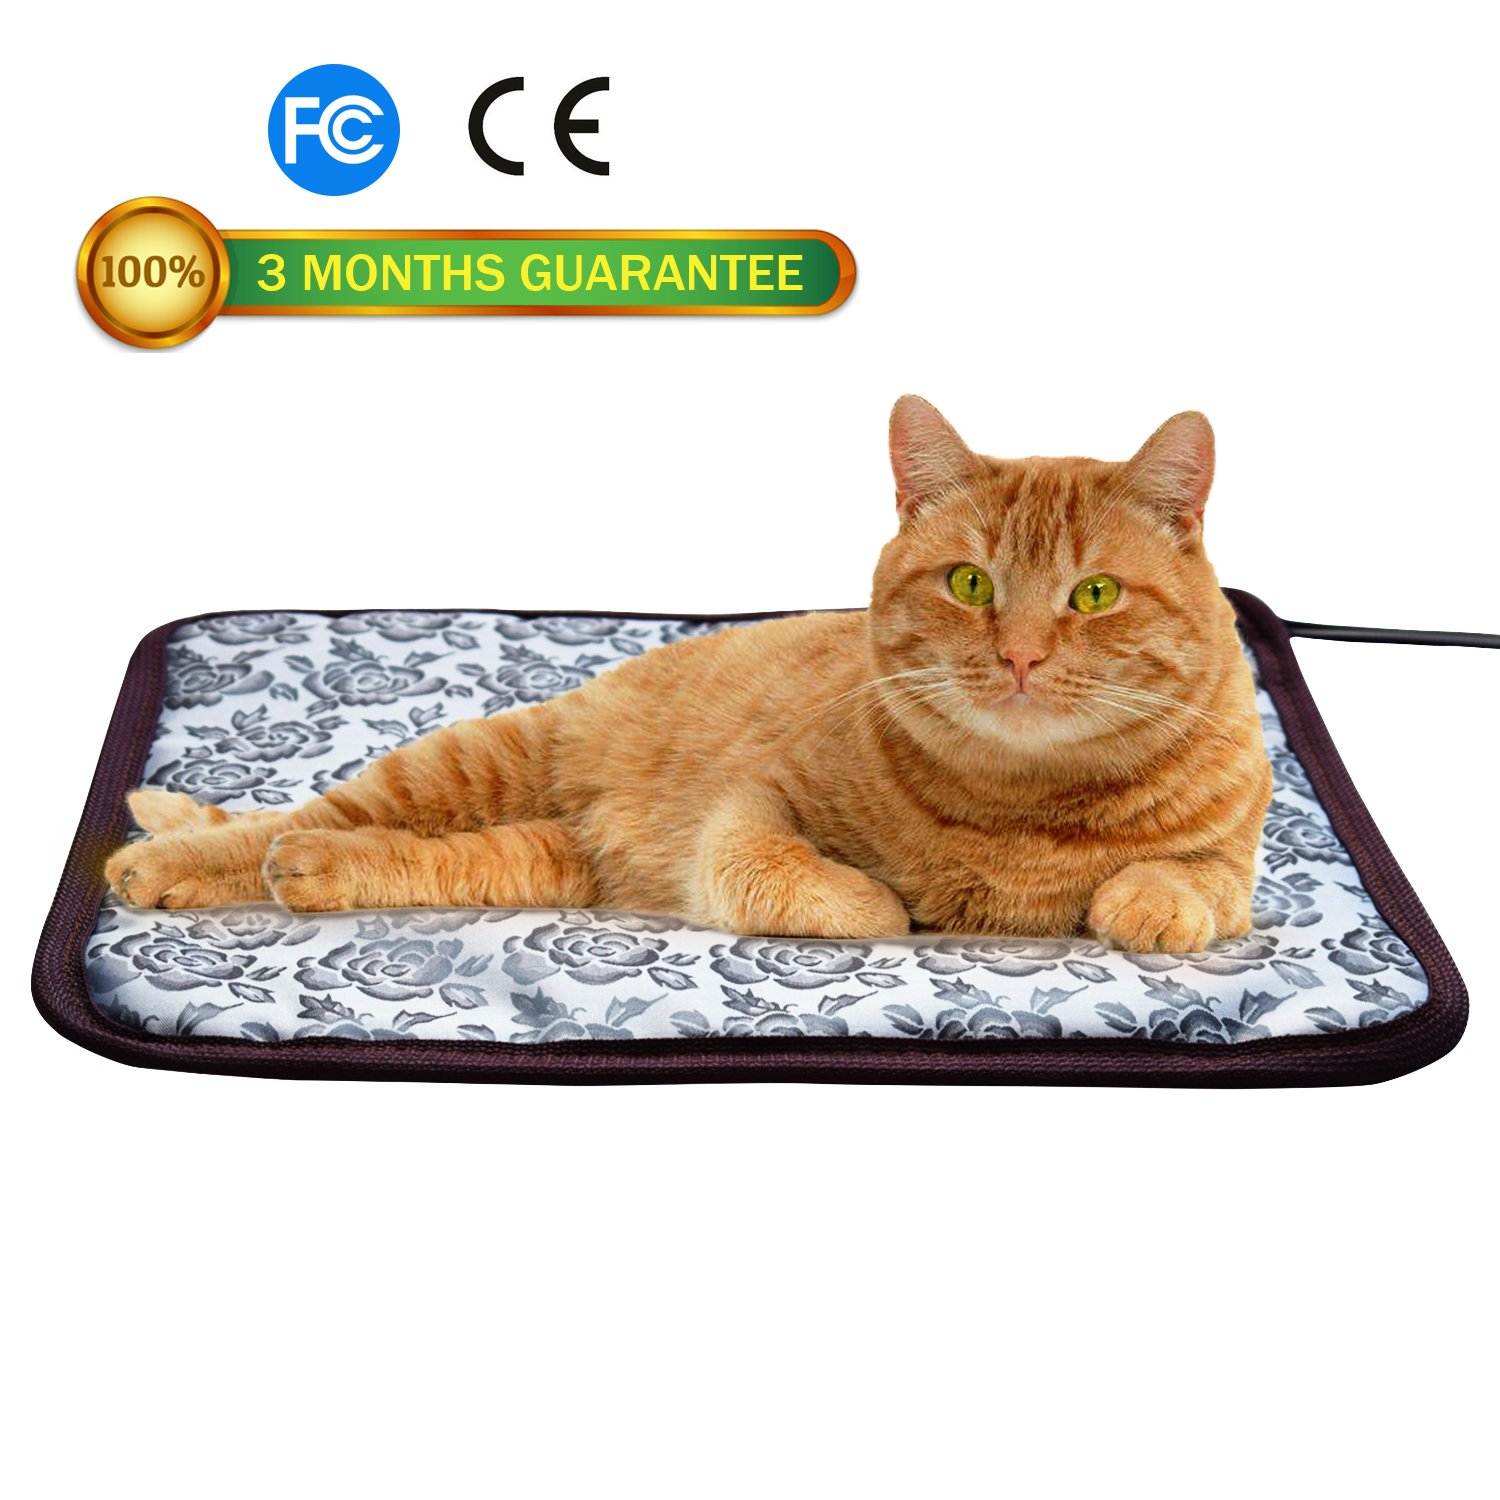 "Pet heat pad for Cats Dogs ,Pet Electric Waterproof Heating Pad with Chew Resistant Steel Cord (S:17.7x17.7 in, FLOWER) (S-17.7""x17.7"", Flower)"